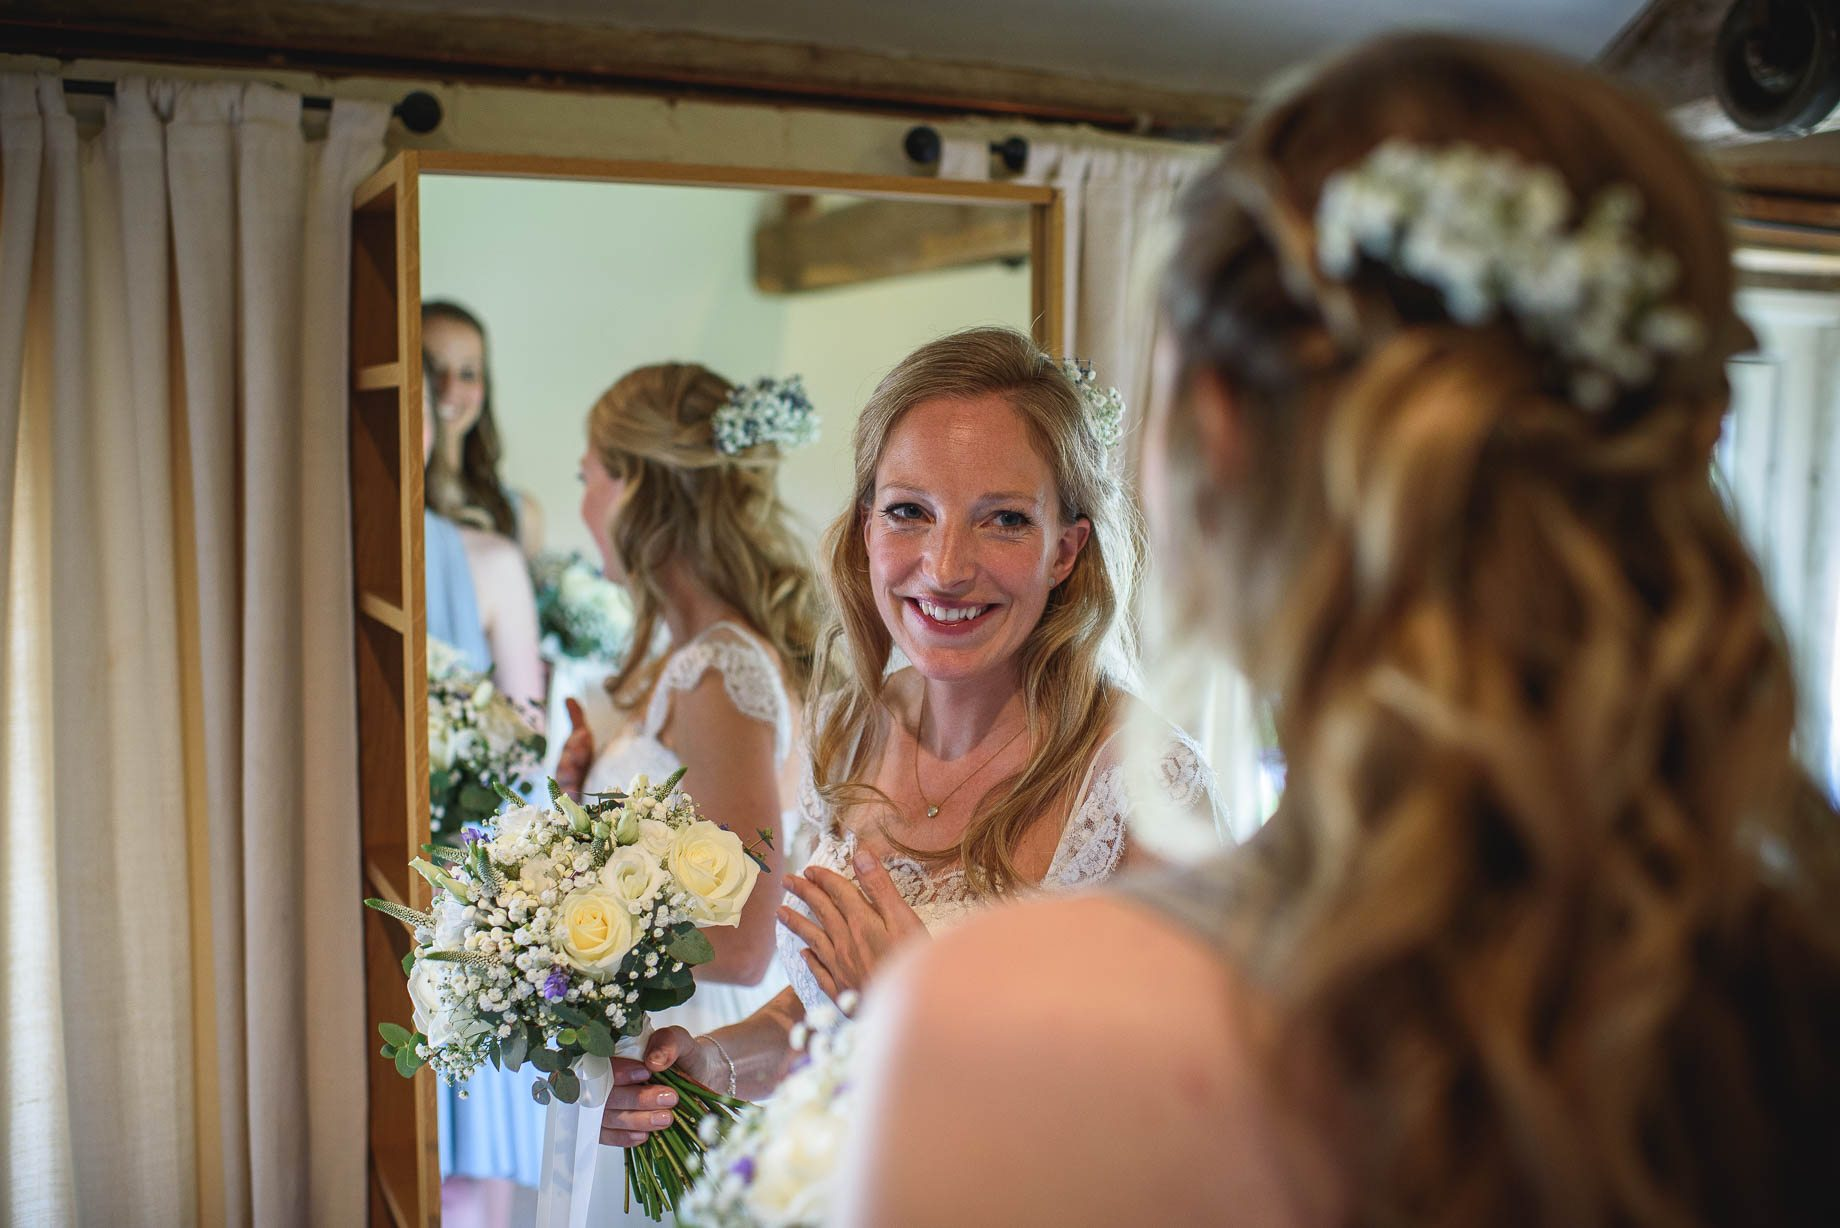 Bury Court Barn wedding photography by Guy Collier - Heather and Pat (23 of 170)